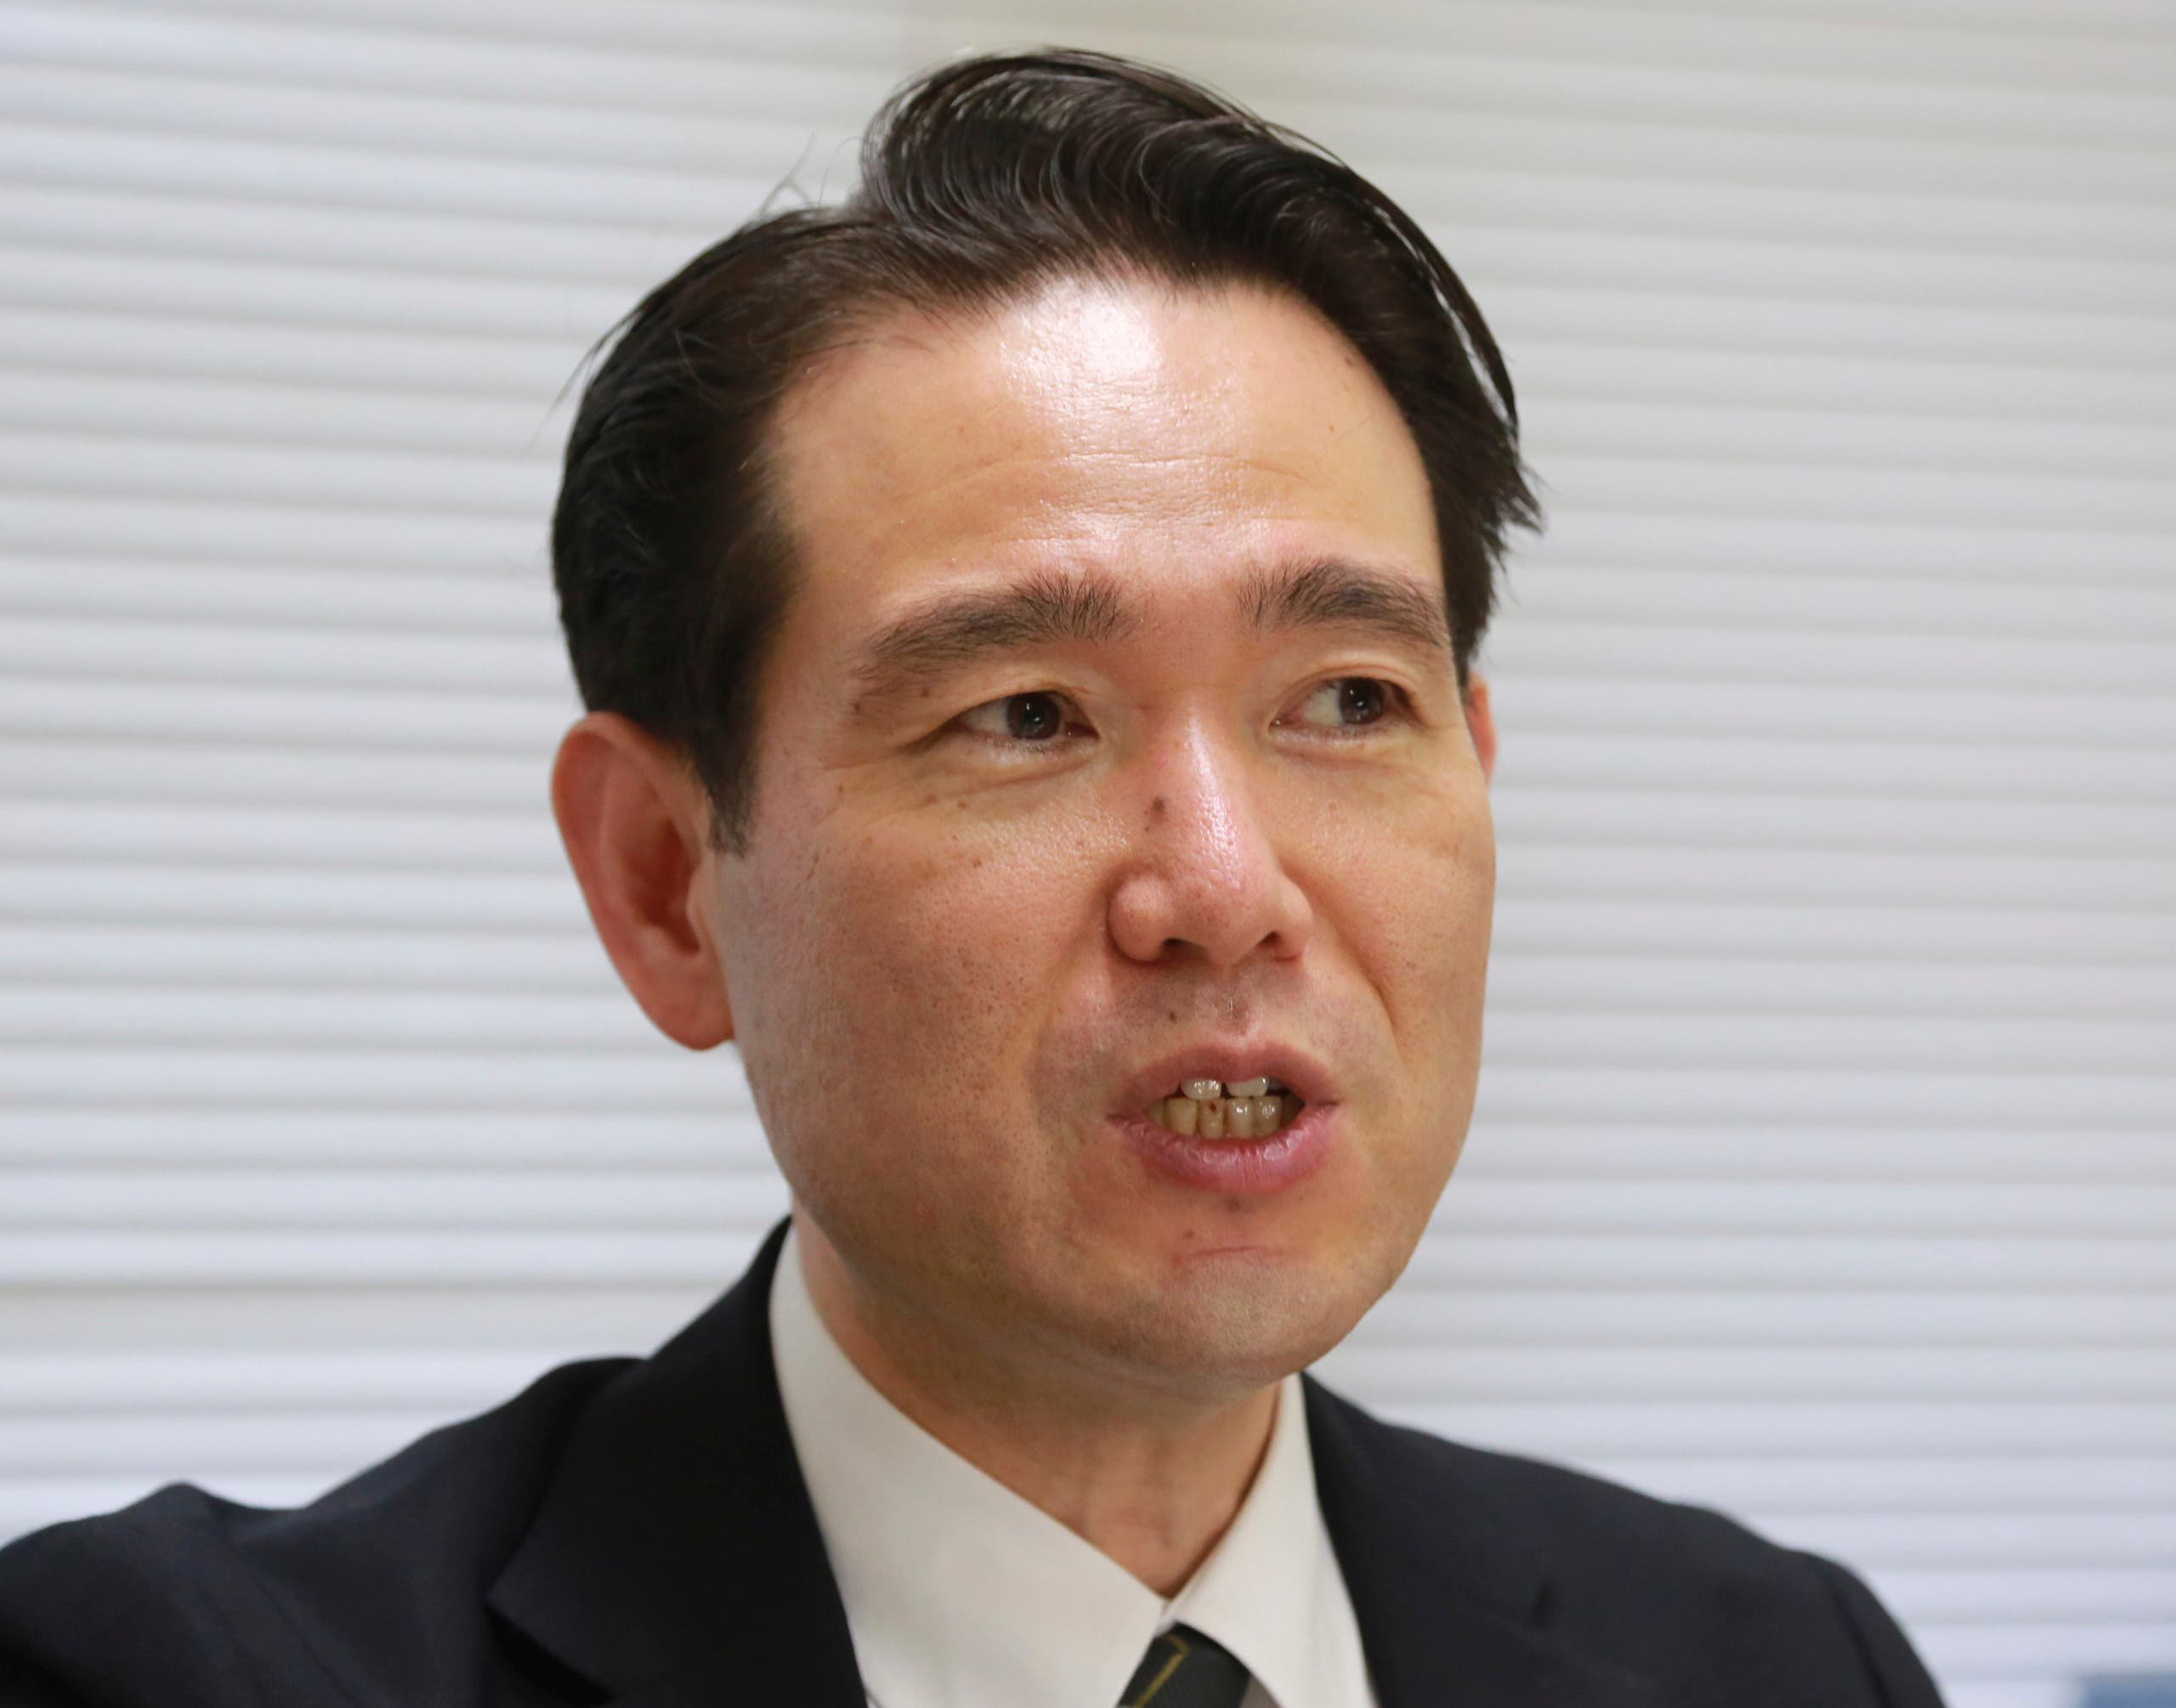 Professor Hiroaki Takazawa of Nihon University, speaks during an interview with the Associated Press in Chiba, near Tokyo on June 8, 2021. Takazawa has revealed declassified documents showing executed wartime Japanese Prime Minister Hideki Tojo's cremated ashes were scattered from a U.S. army aircraft over the Pacific Ocean about 30 miles (50 kilometers) east of Yokohama, Japan's second largest city. (File photo: AP)